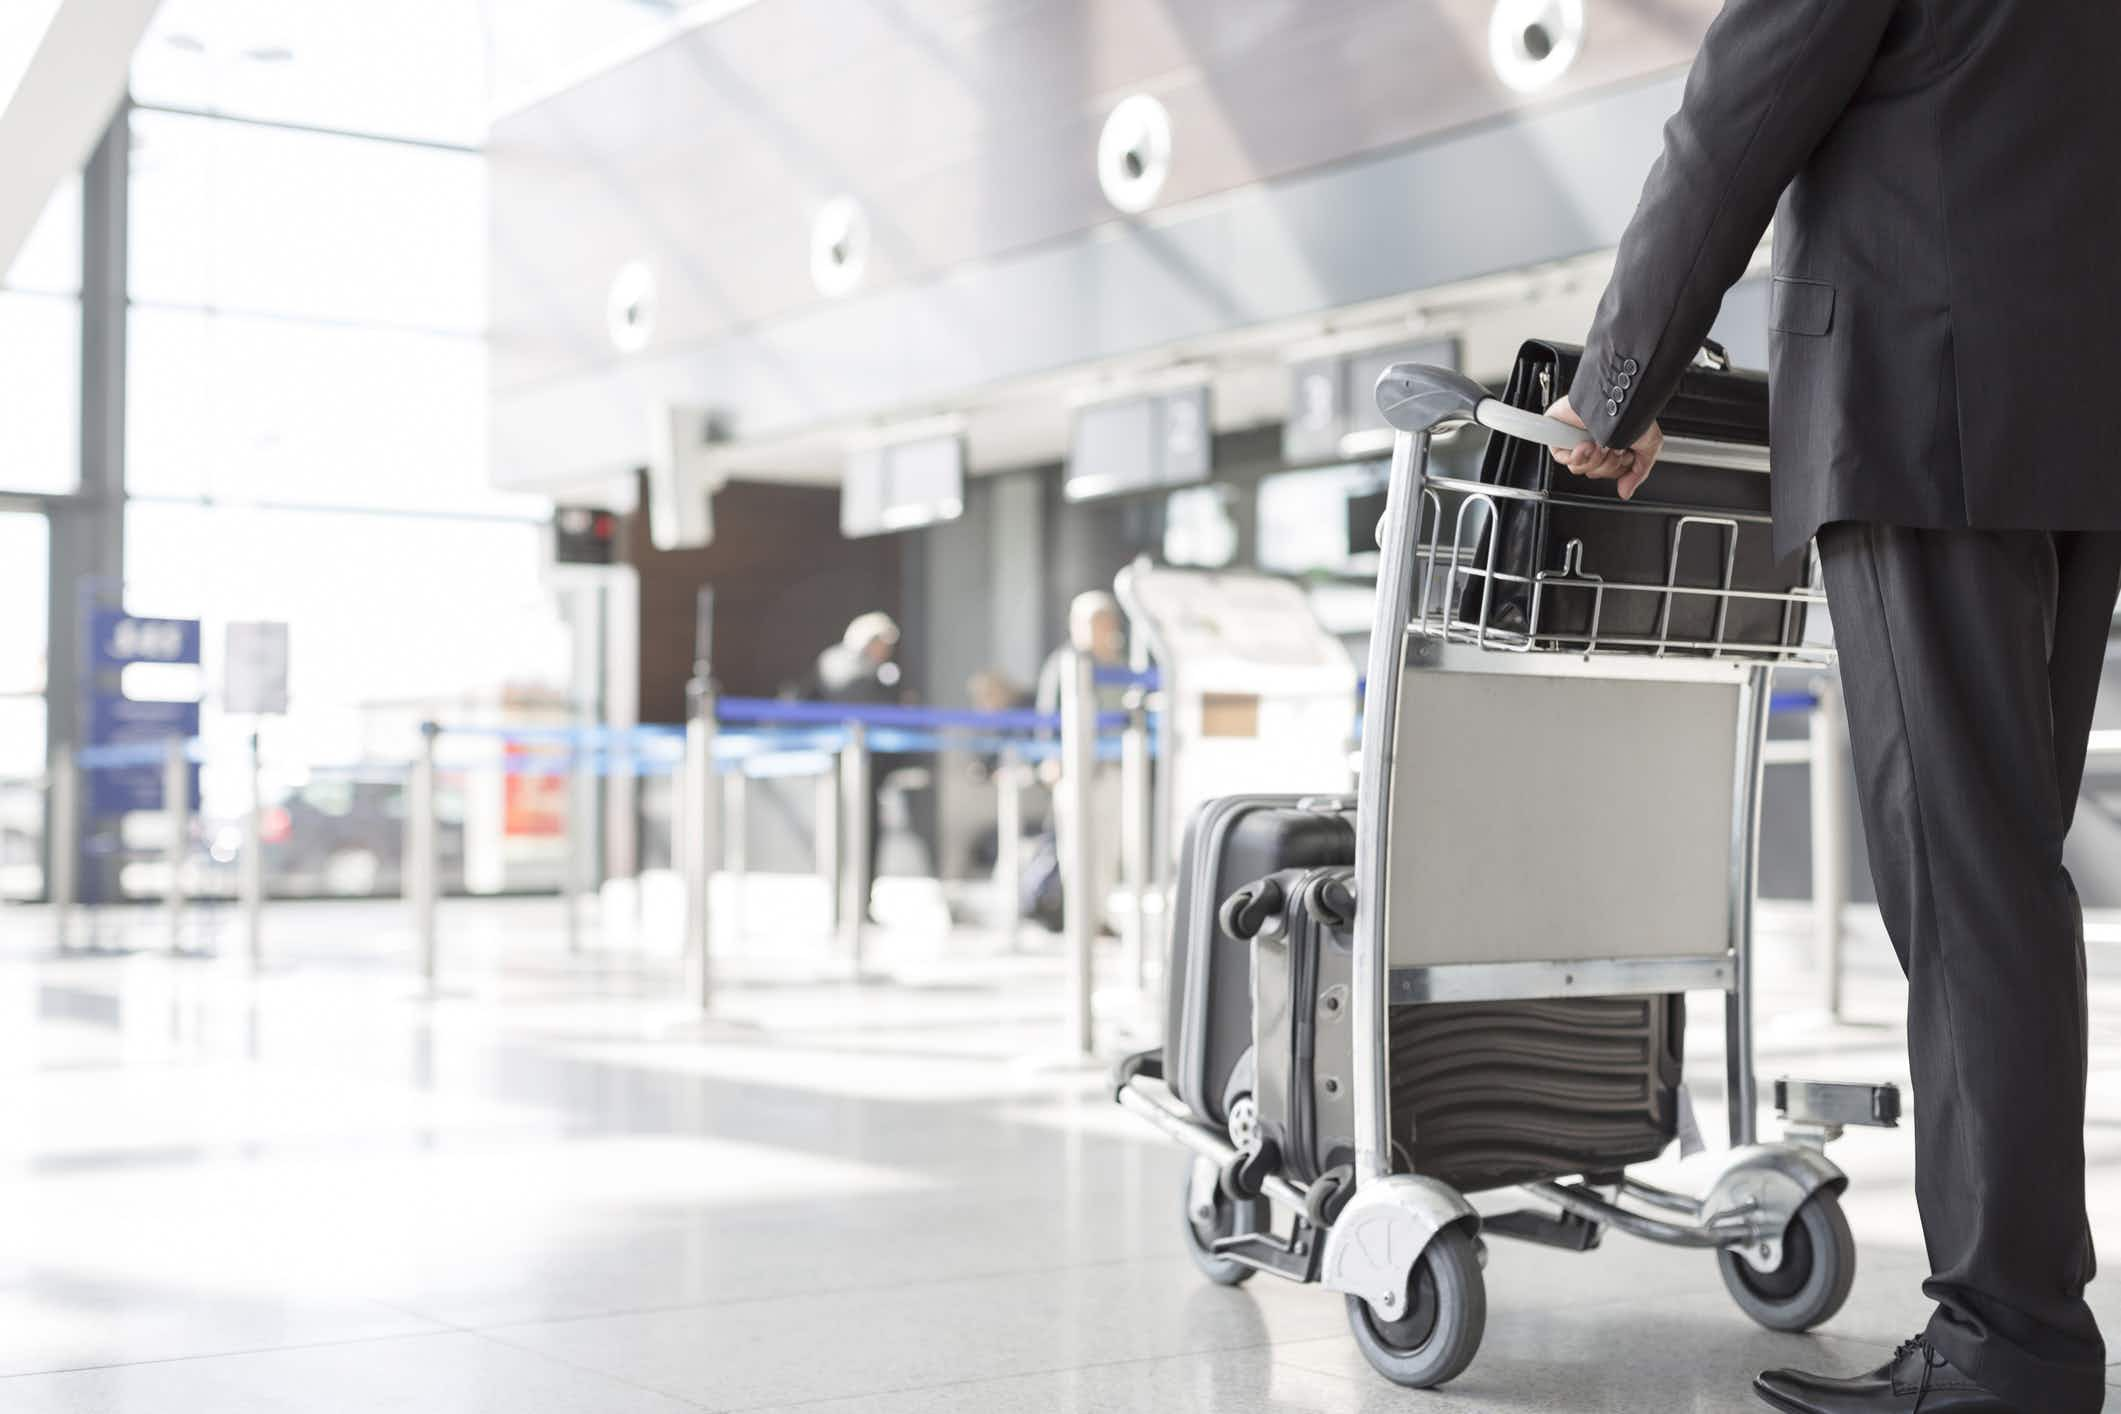 Most airline travellers are satisfied with their journey according to the latest survey